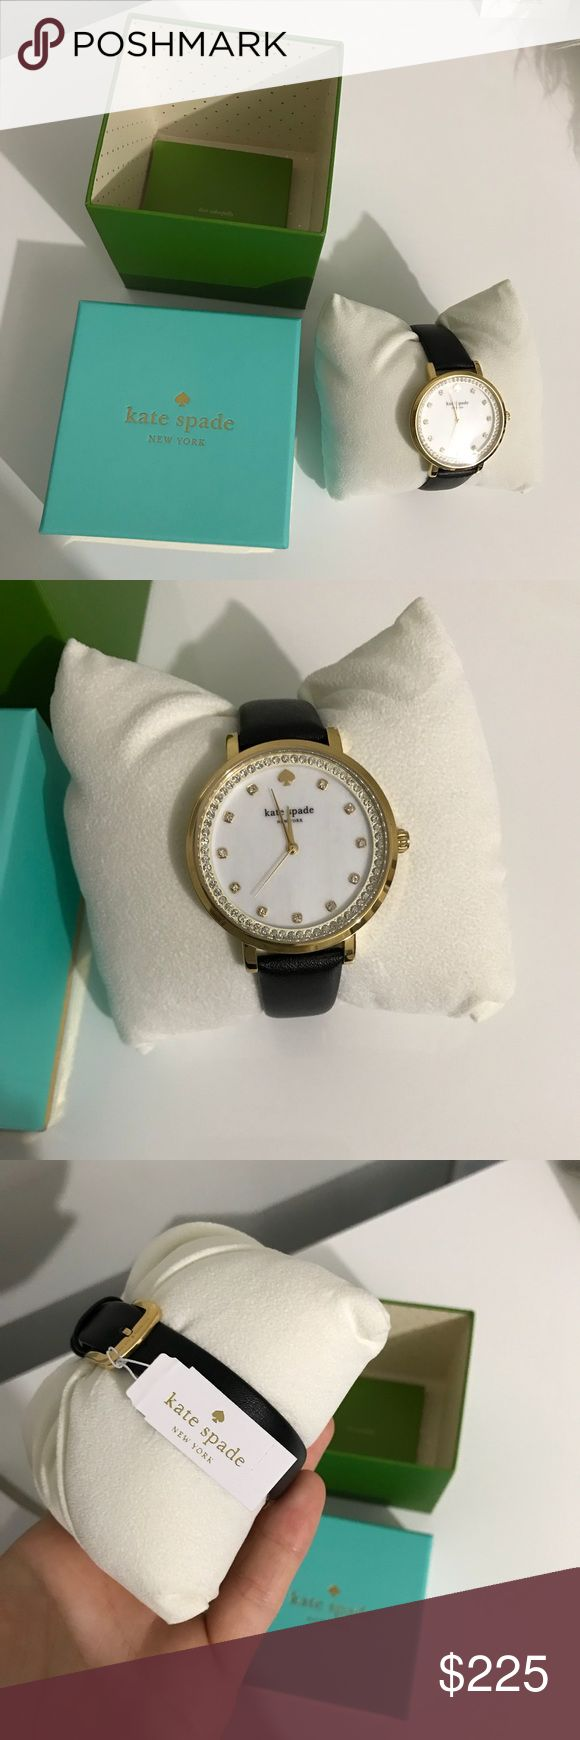 Kate Spade ♠️ black leather and gold watch New in box with tag , pillow pouf, booklet and watch box Black leather wrist watch gold detailing Pet free smoke free home ships ASAP kate spade Accessories Watches